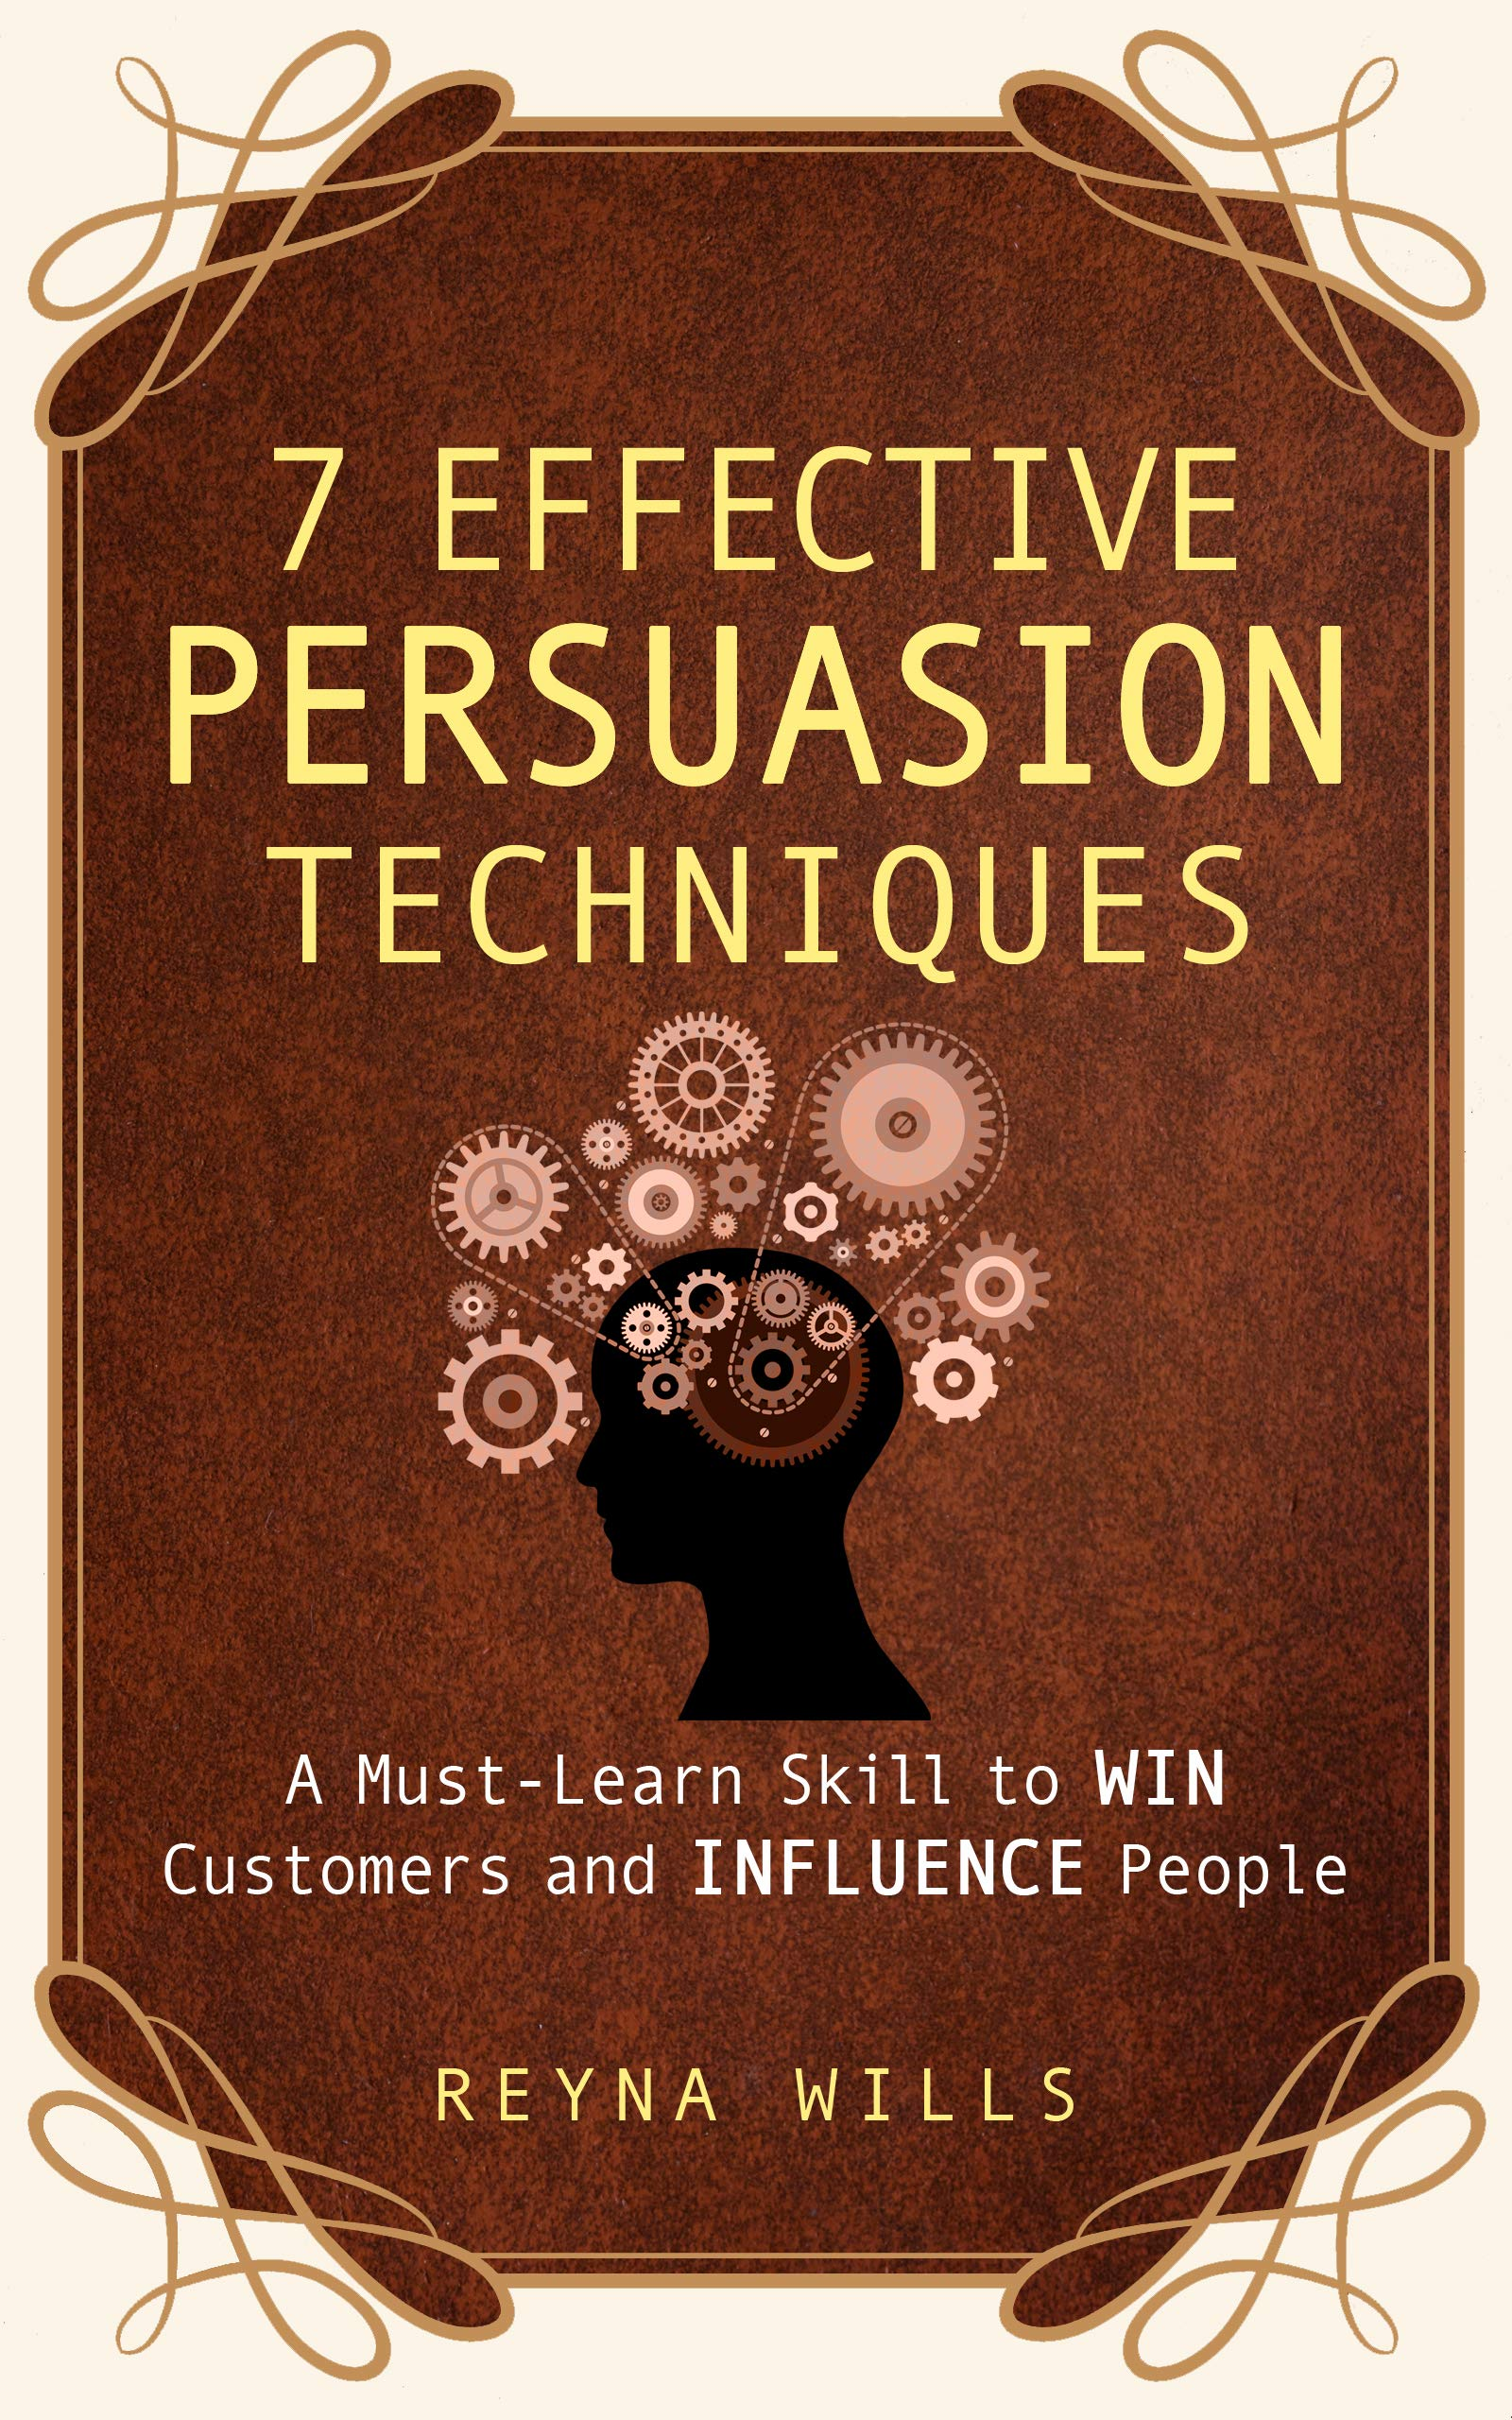 7 Effective Persuasion Techniques: A Must-Learn Skill to Win Customers and Influence People